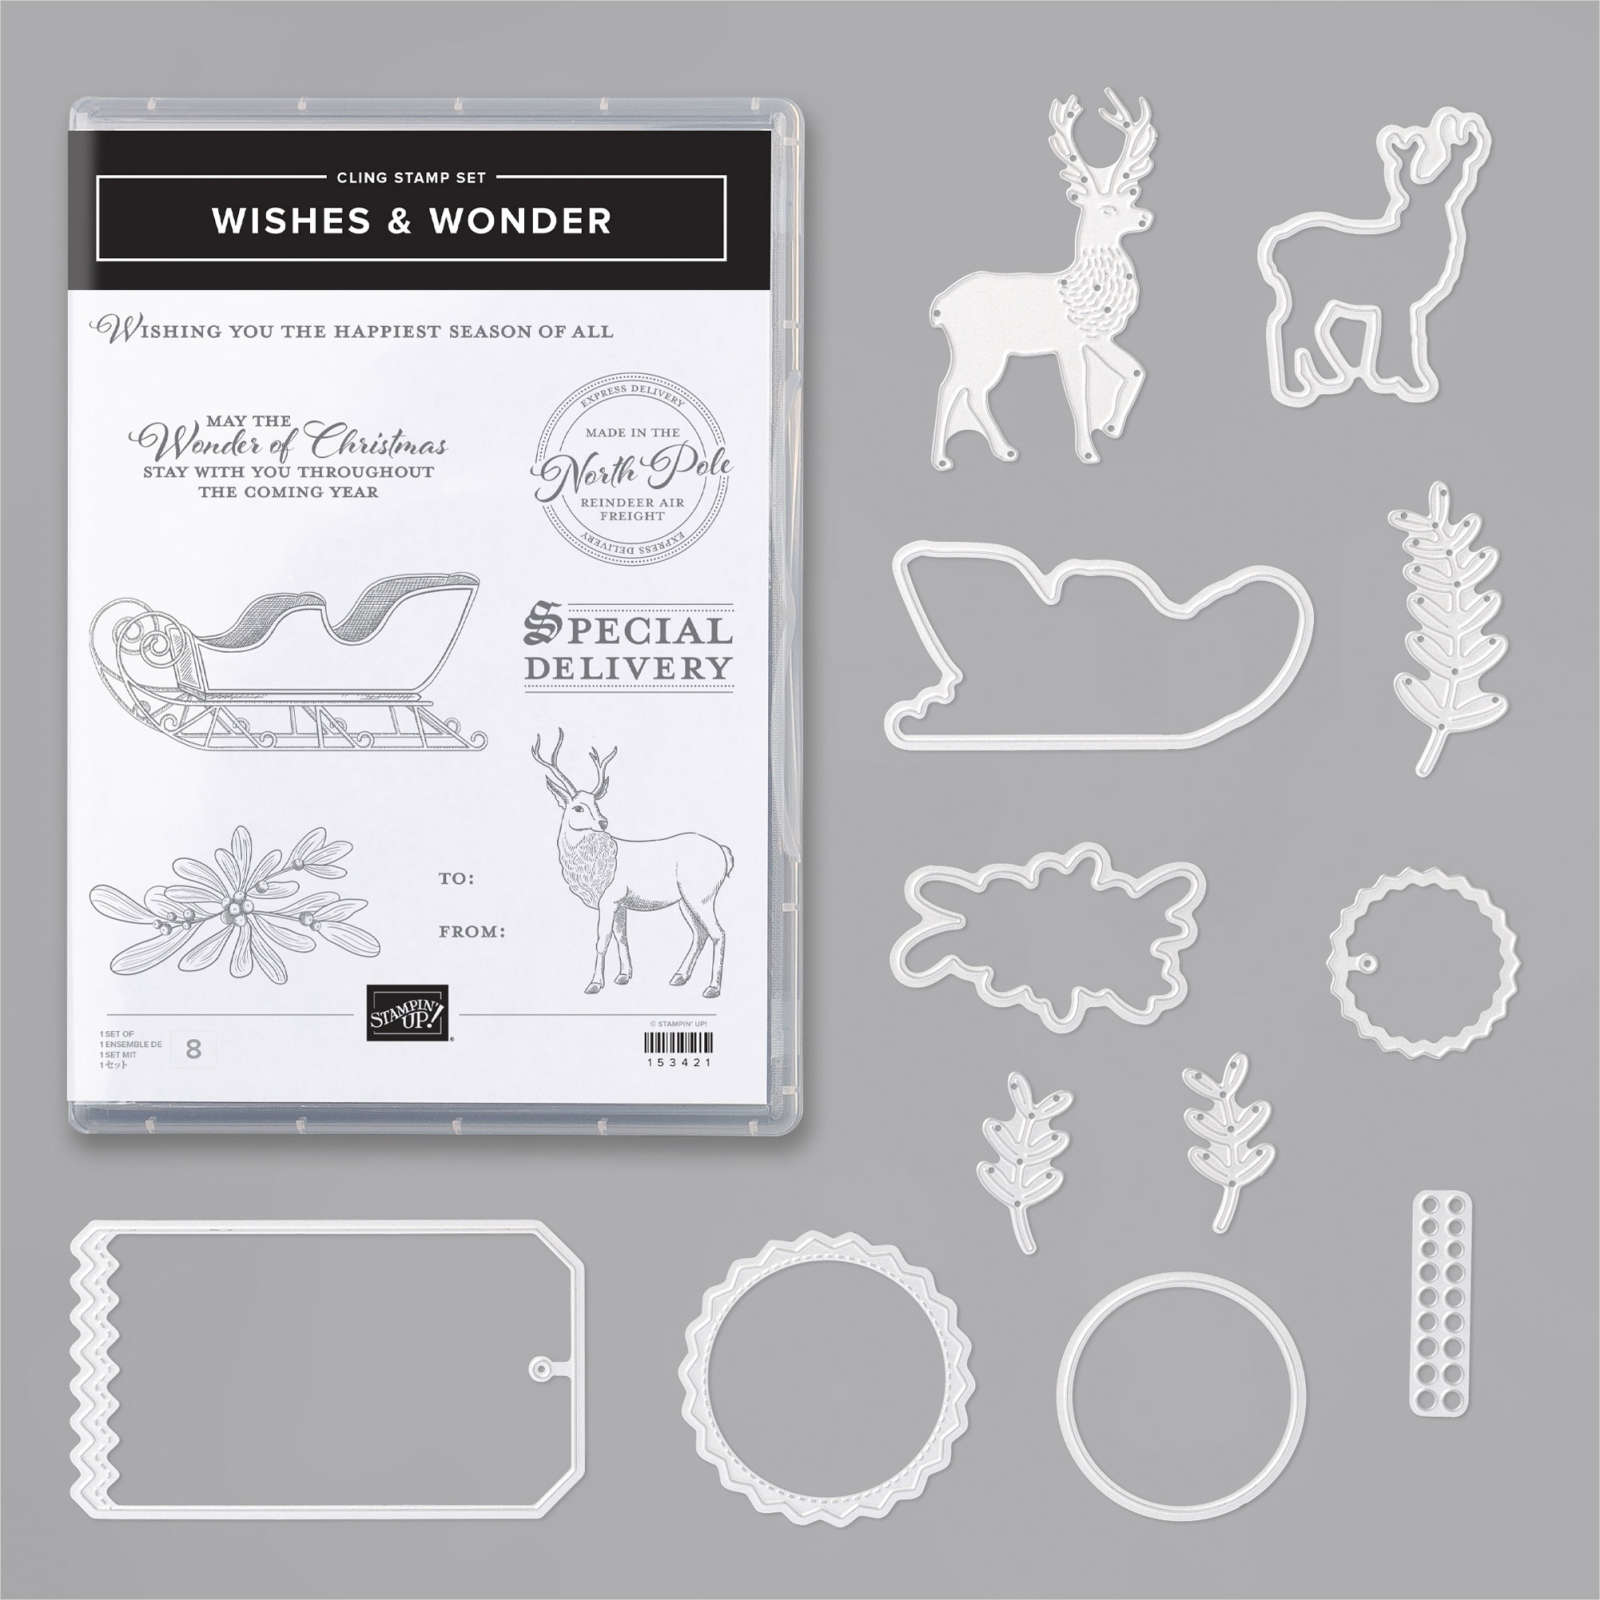 Wishes & Wonder bundle from Stampin' Up!